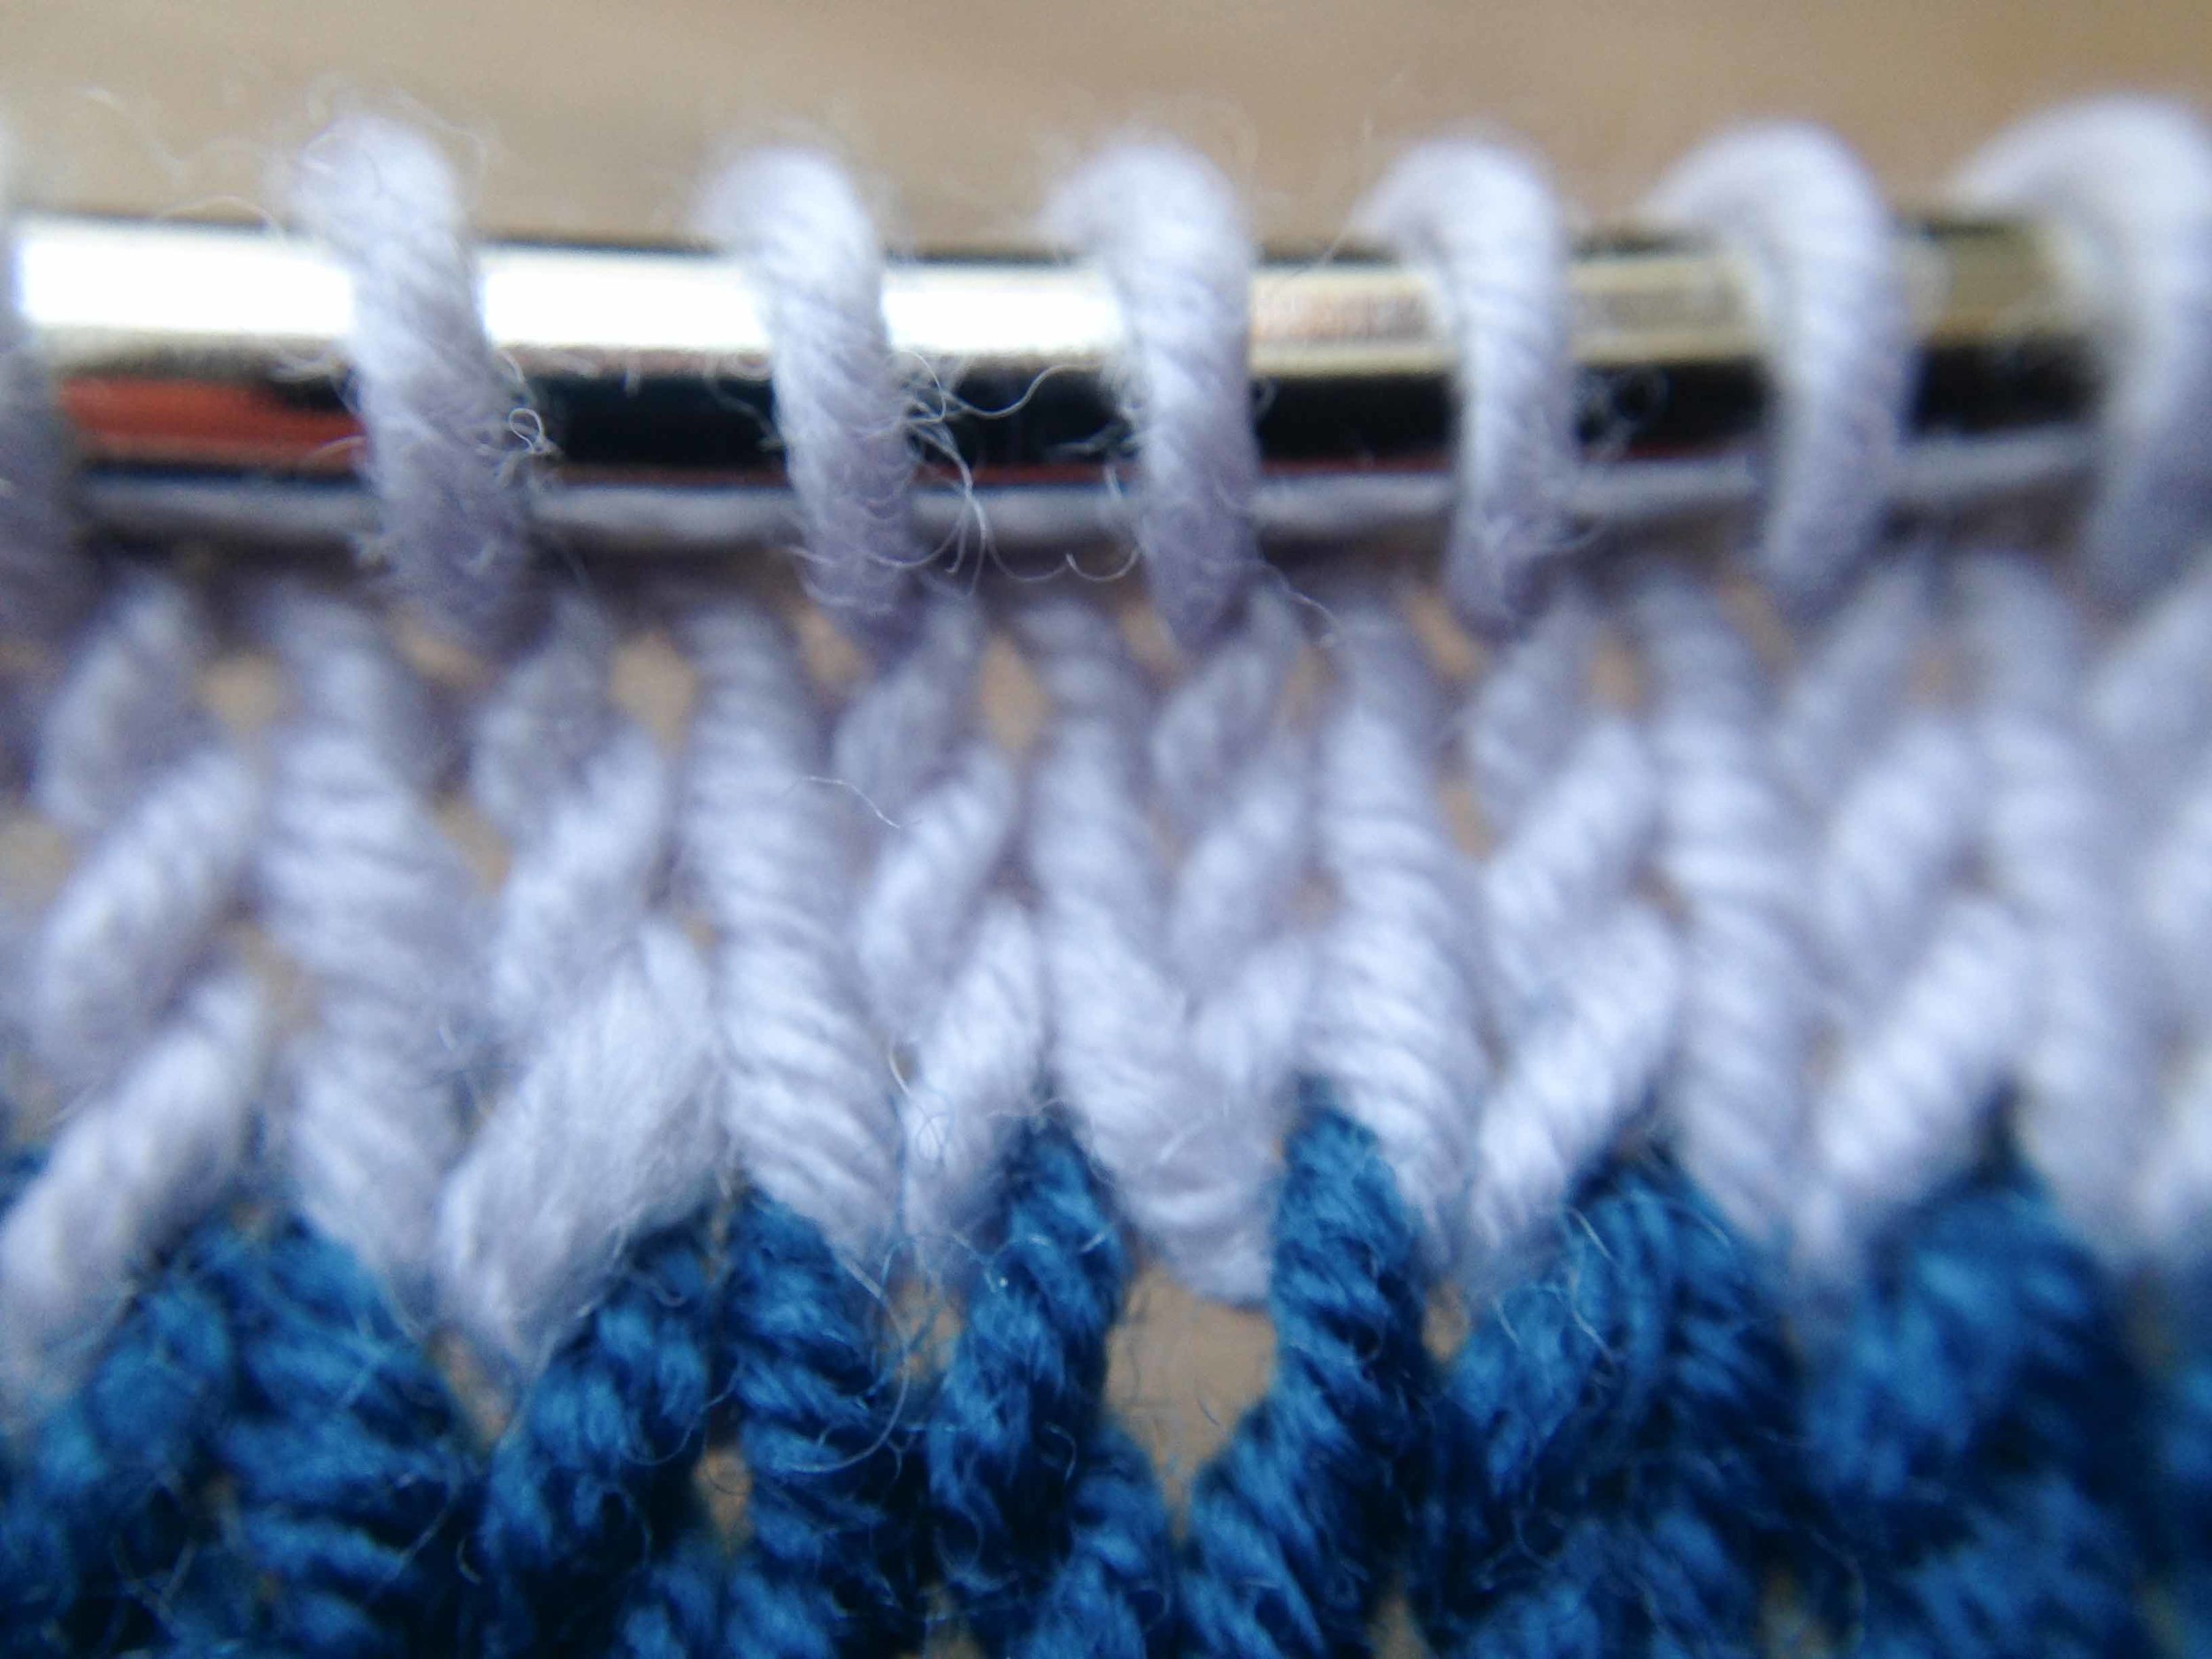 And this is what it looks like if you have an increase rows and then knit three rows.